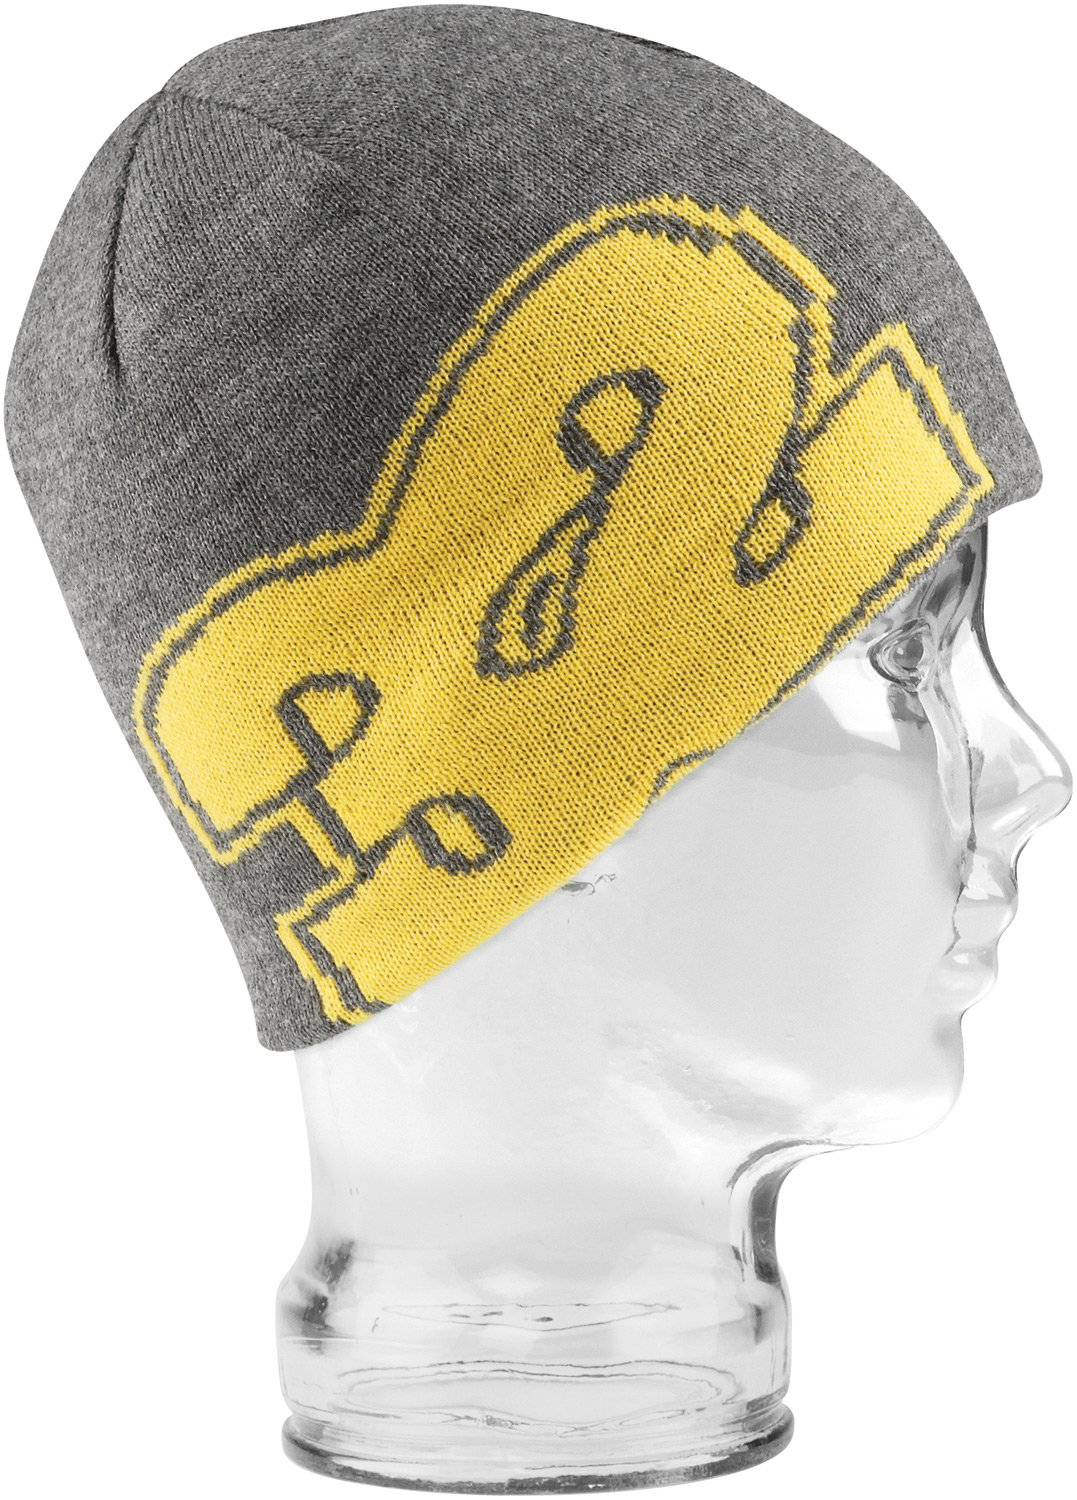 Beanies need to keep you warm and look good too, so wear the Thirty Two Brose 2 Beanie for men and you are sure to get the best of both. This Thirty Two beanie is reversible with unique jacquard logos on each side that you are sure to love. Most importantly the 100% acrylic material is soft, never itchy, and will keep you warm and comfortable all day.  Key Features of the 32 - Thirty Two Brose 2 Beanie: 100% acrylic reversible beanie with jacquard logos - $11.95